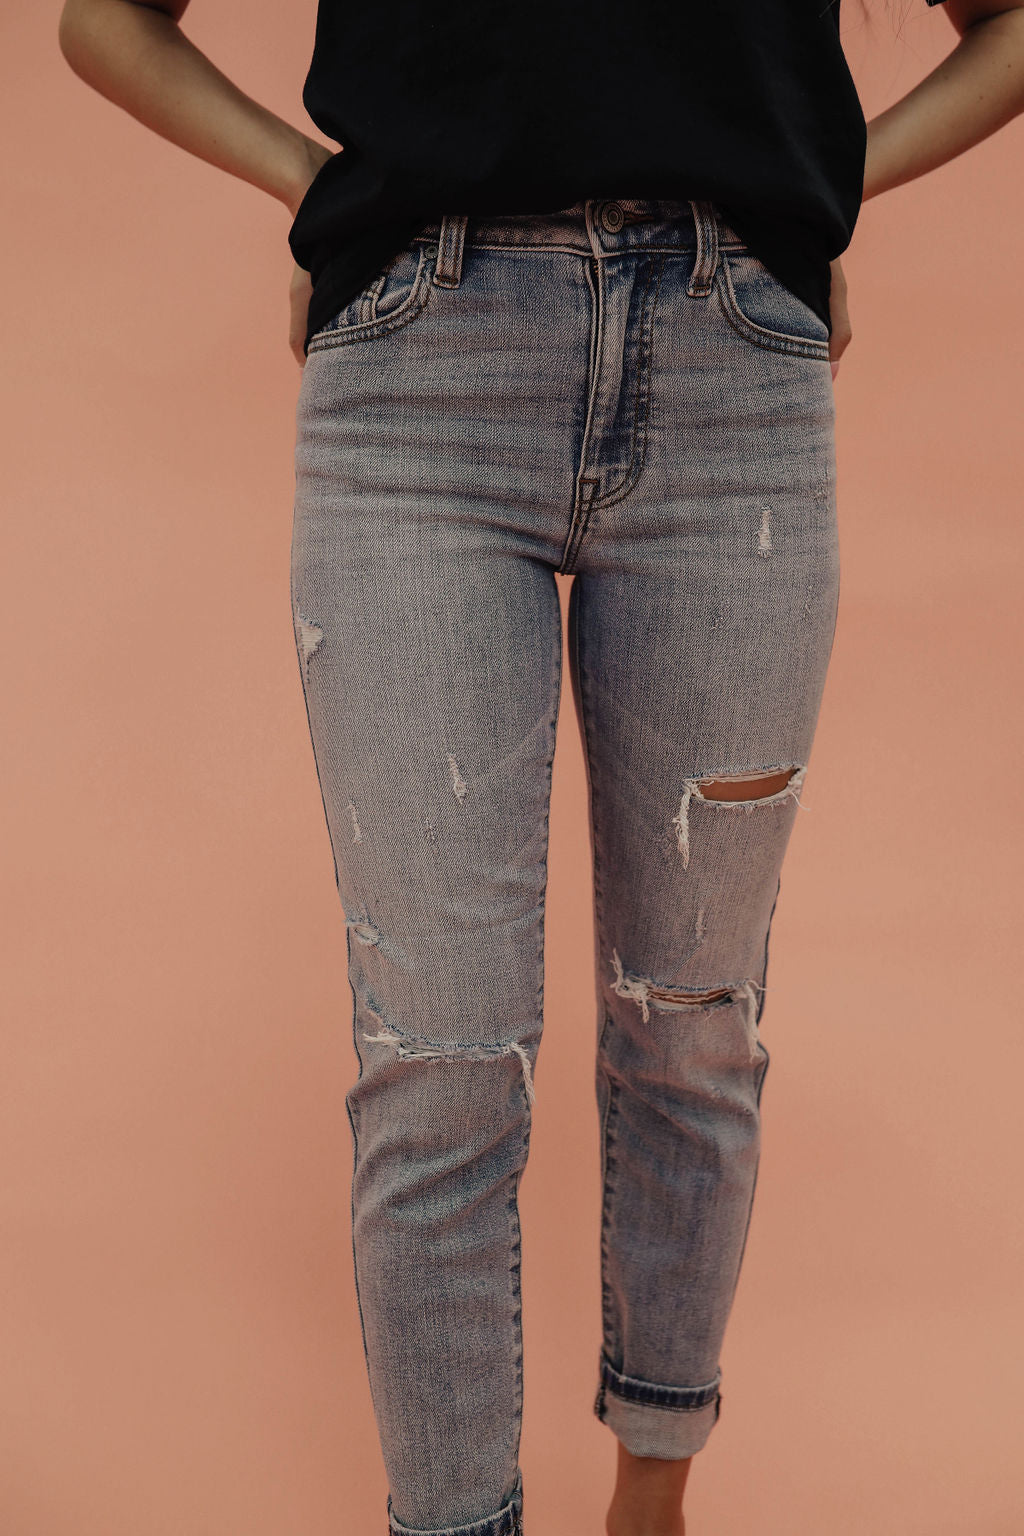 THE TOBI HIGH RISE DISTRESSED JEAN IN LIGHT DENIM